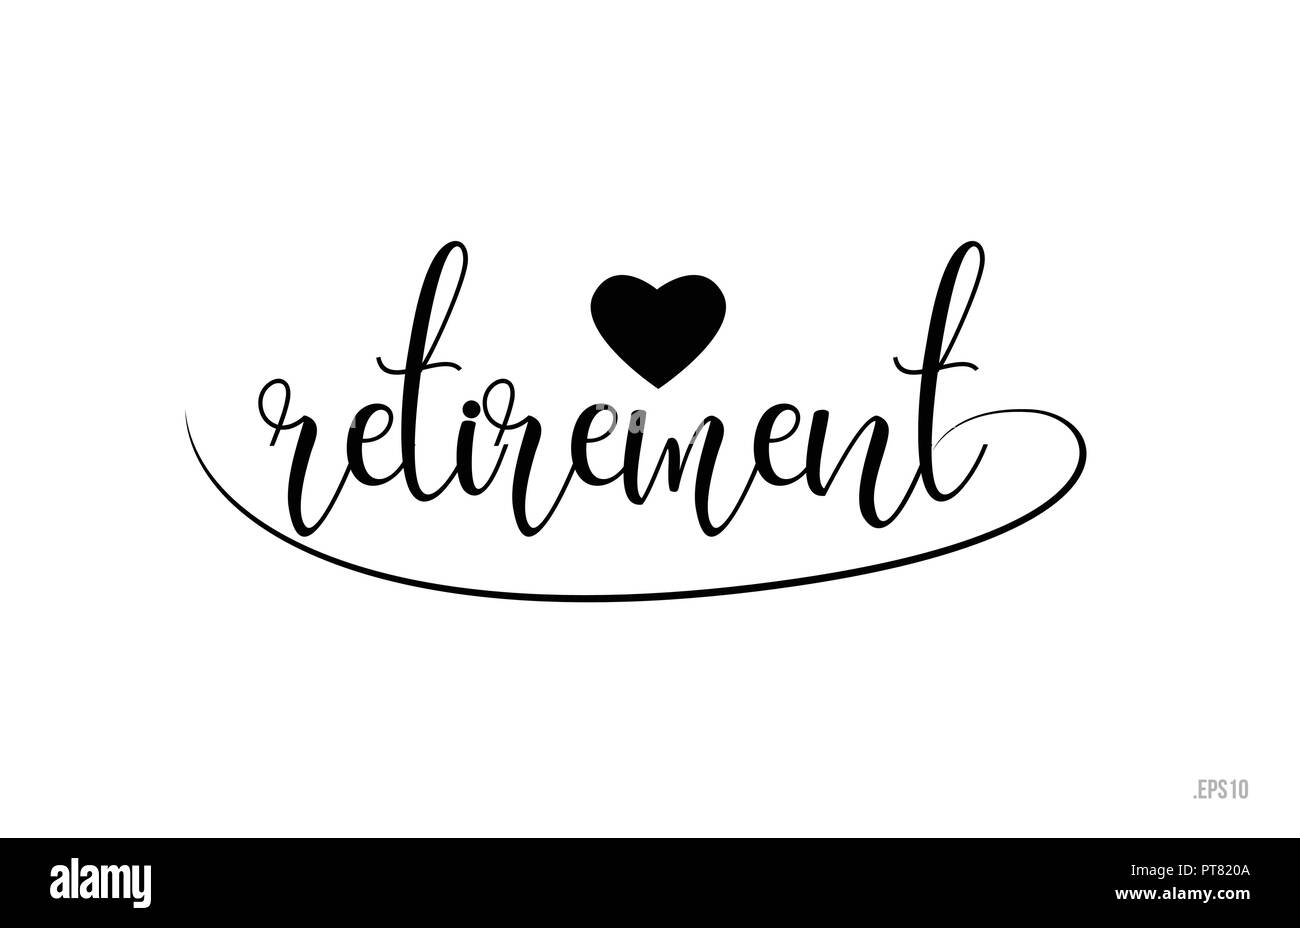 retirement word text with black and white love heart suitable for